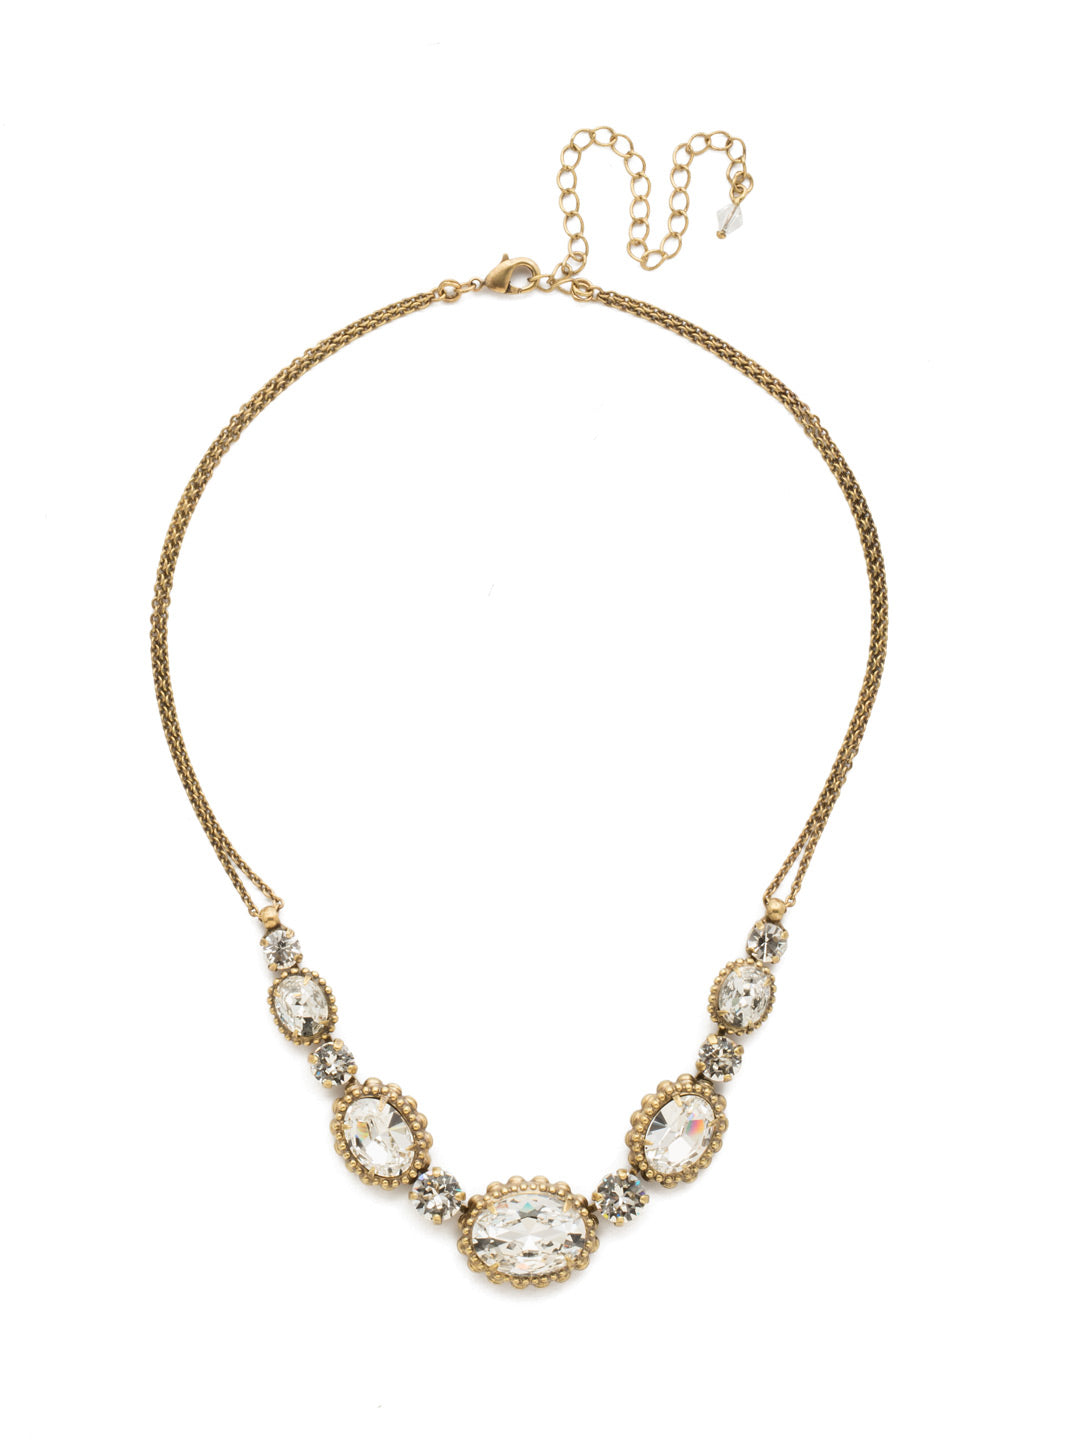 Camellia Necklace - NDQ10AGCRY